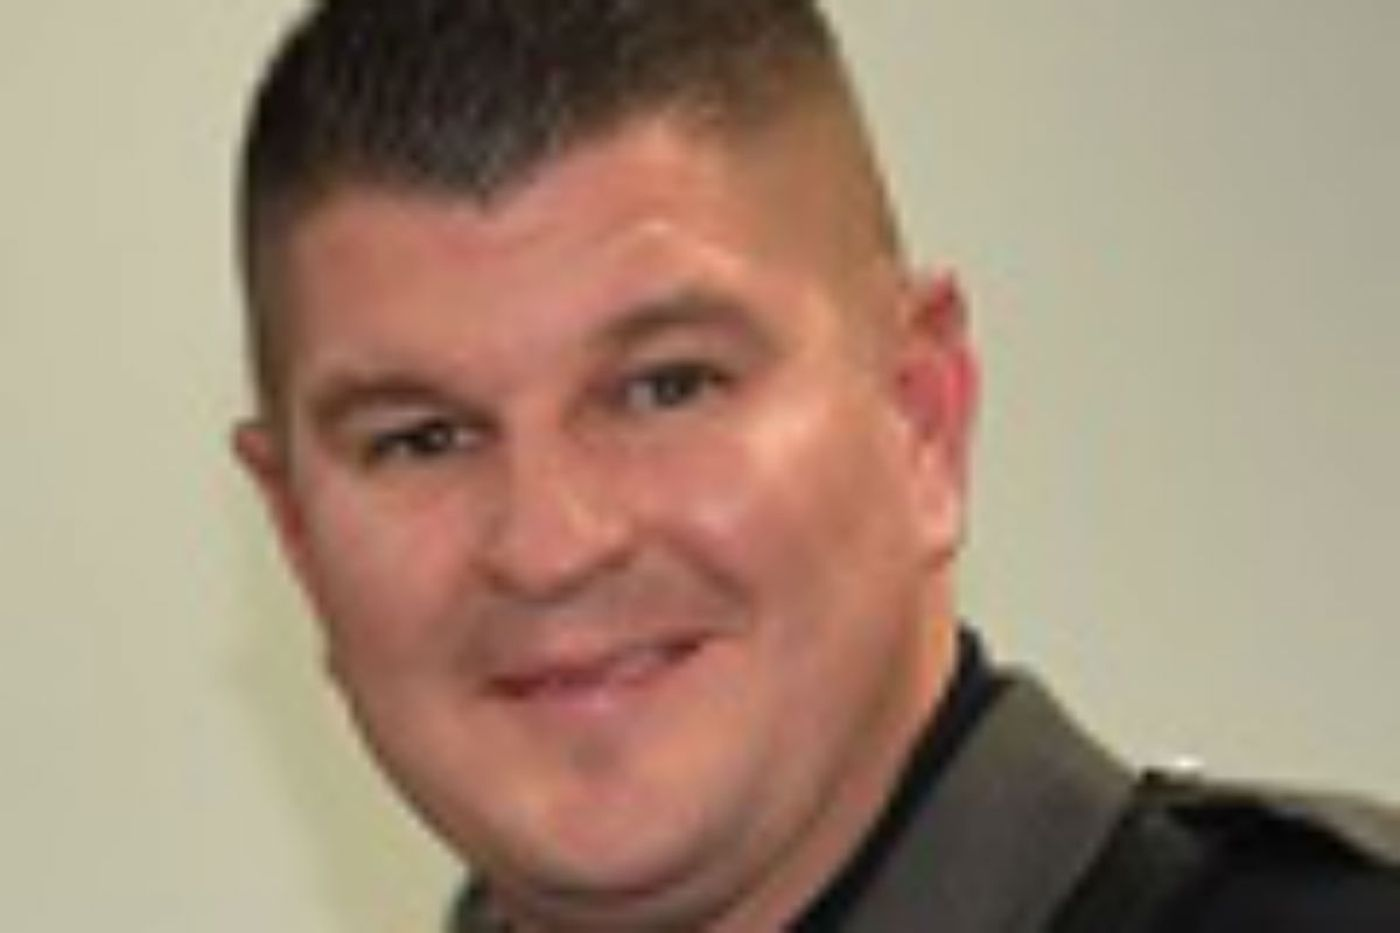 Clinton J. Cunningham, 37, police officer in Newtown, Philly